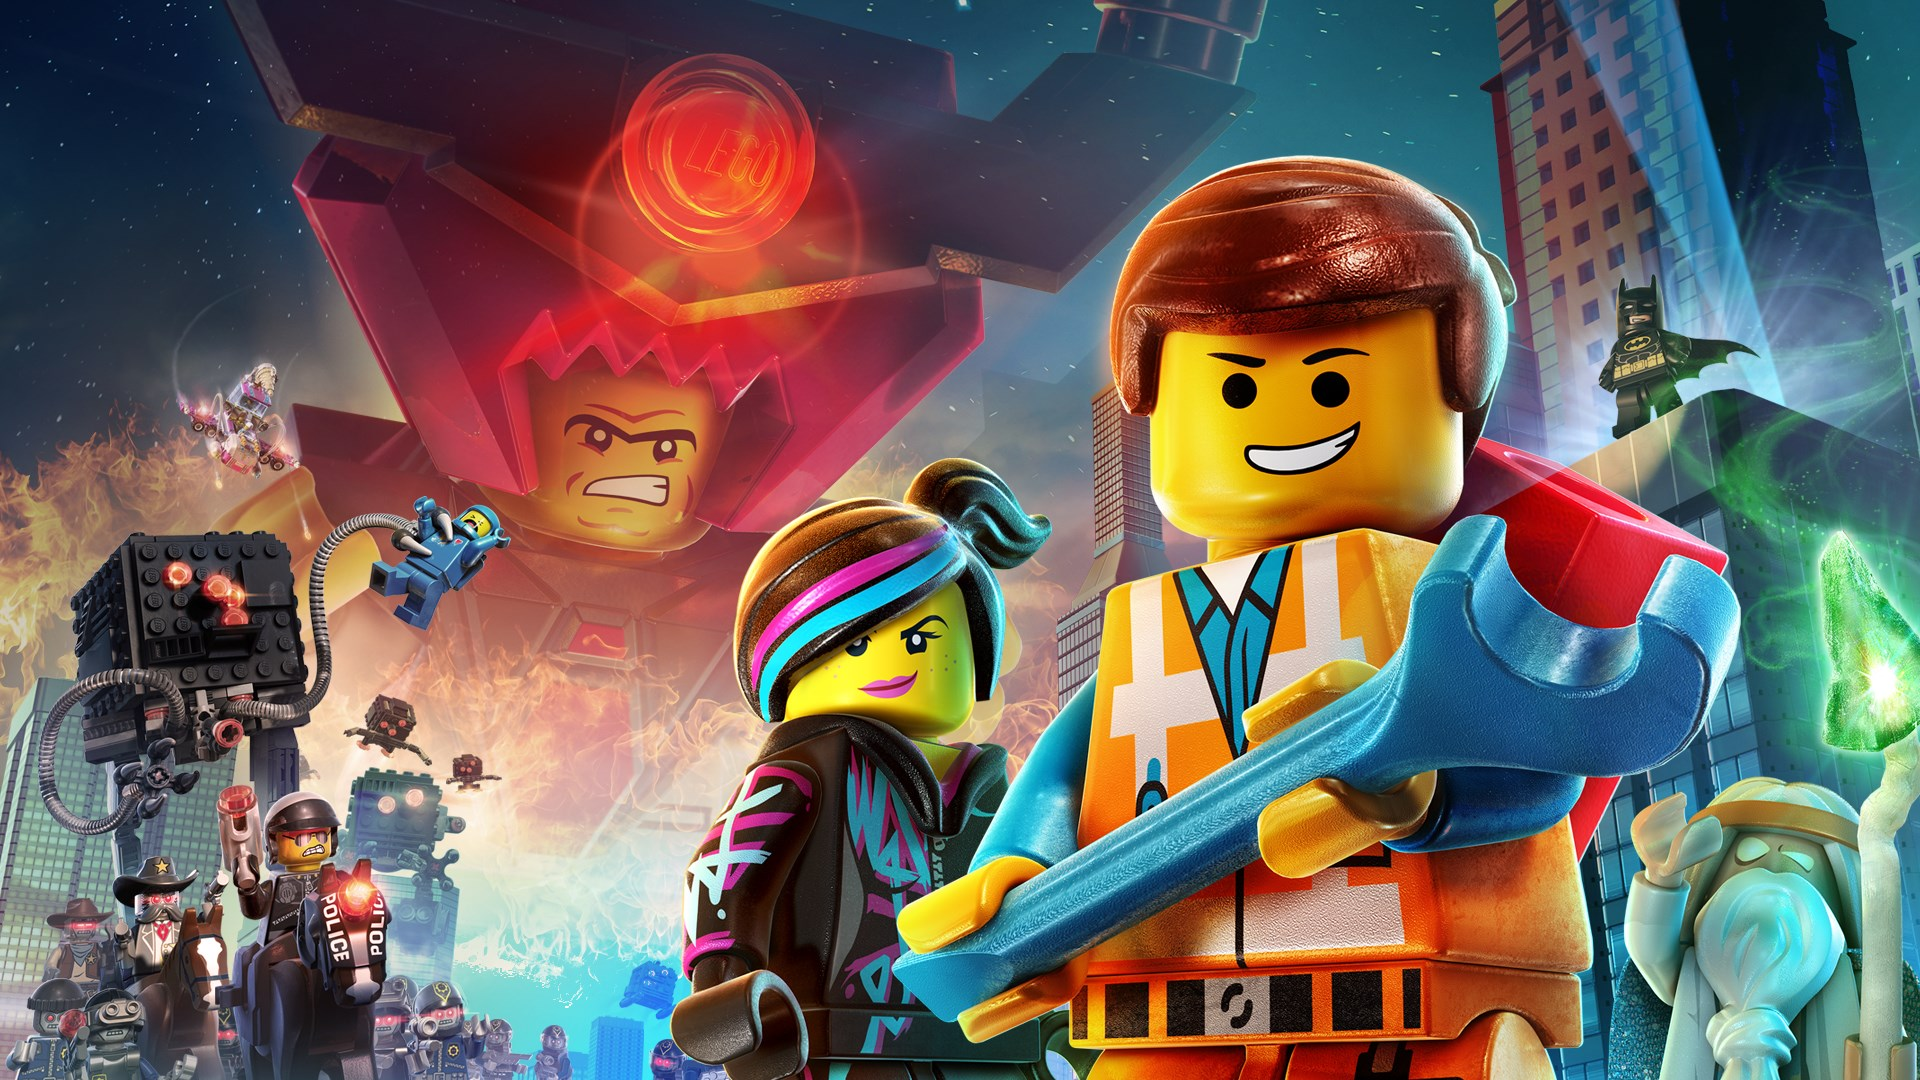 5 Interesting Facts About Lego Video Games